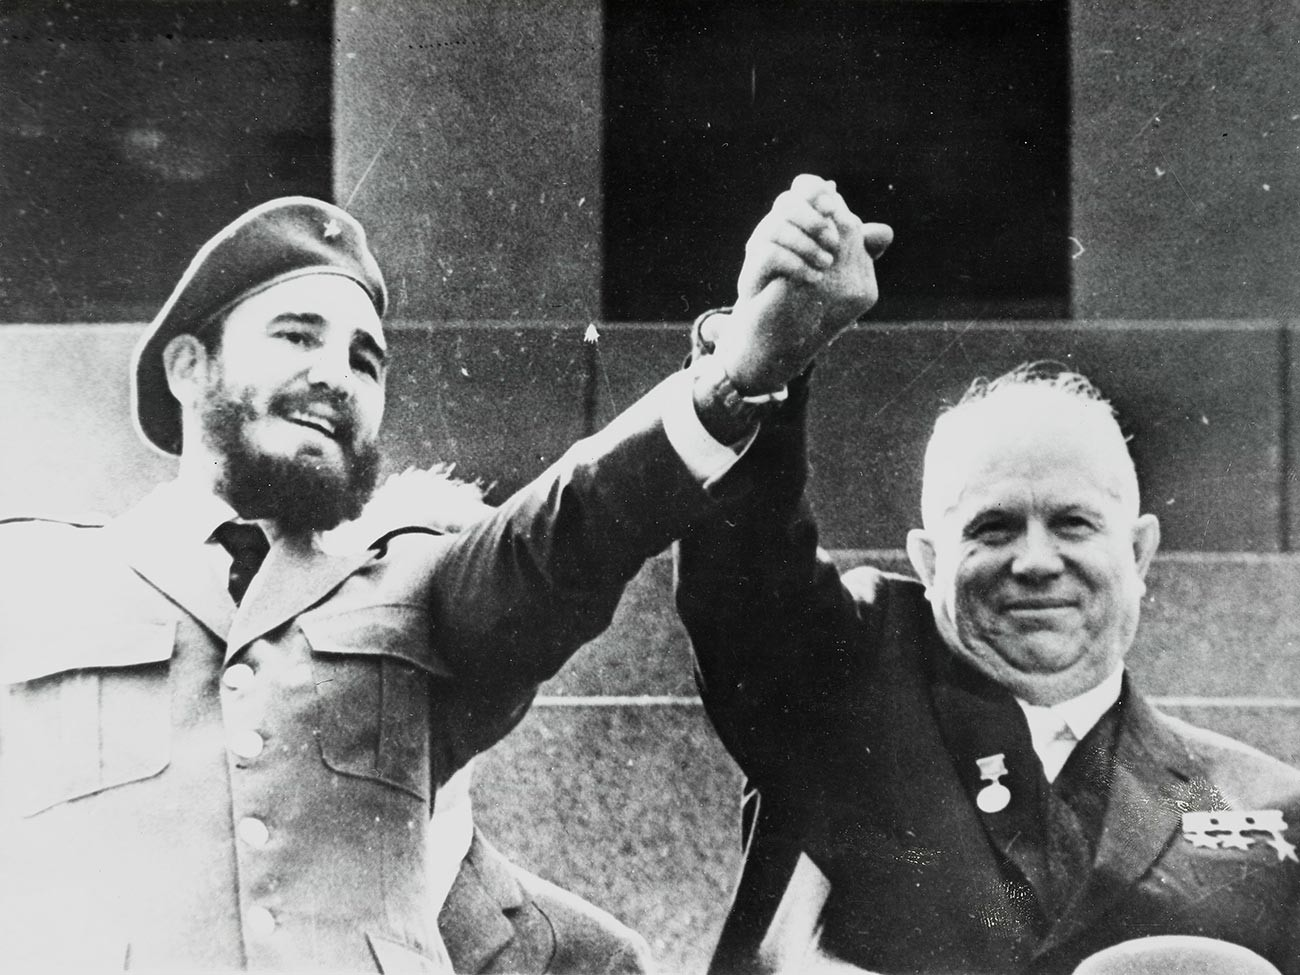 Nikita Khrushchev and Fidel Castro while watching the May Day Parade in Red Square.